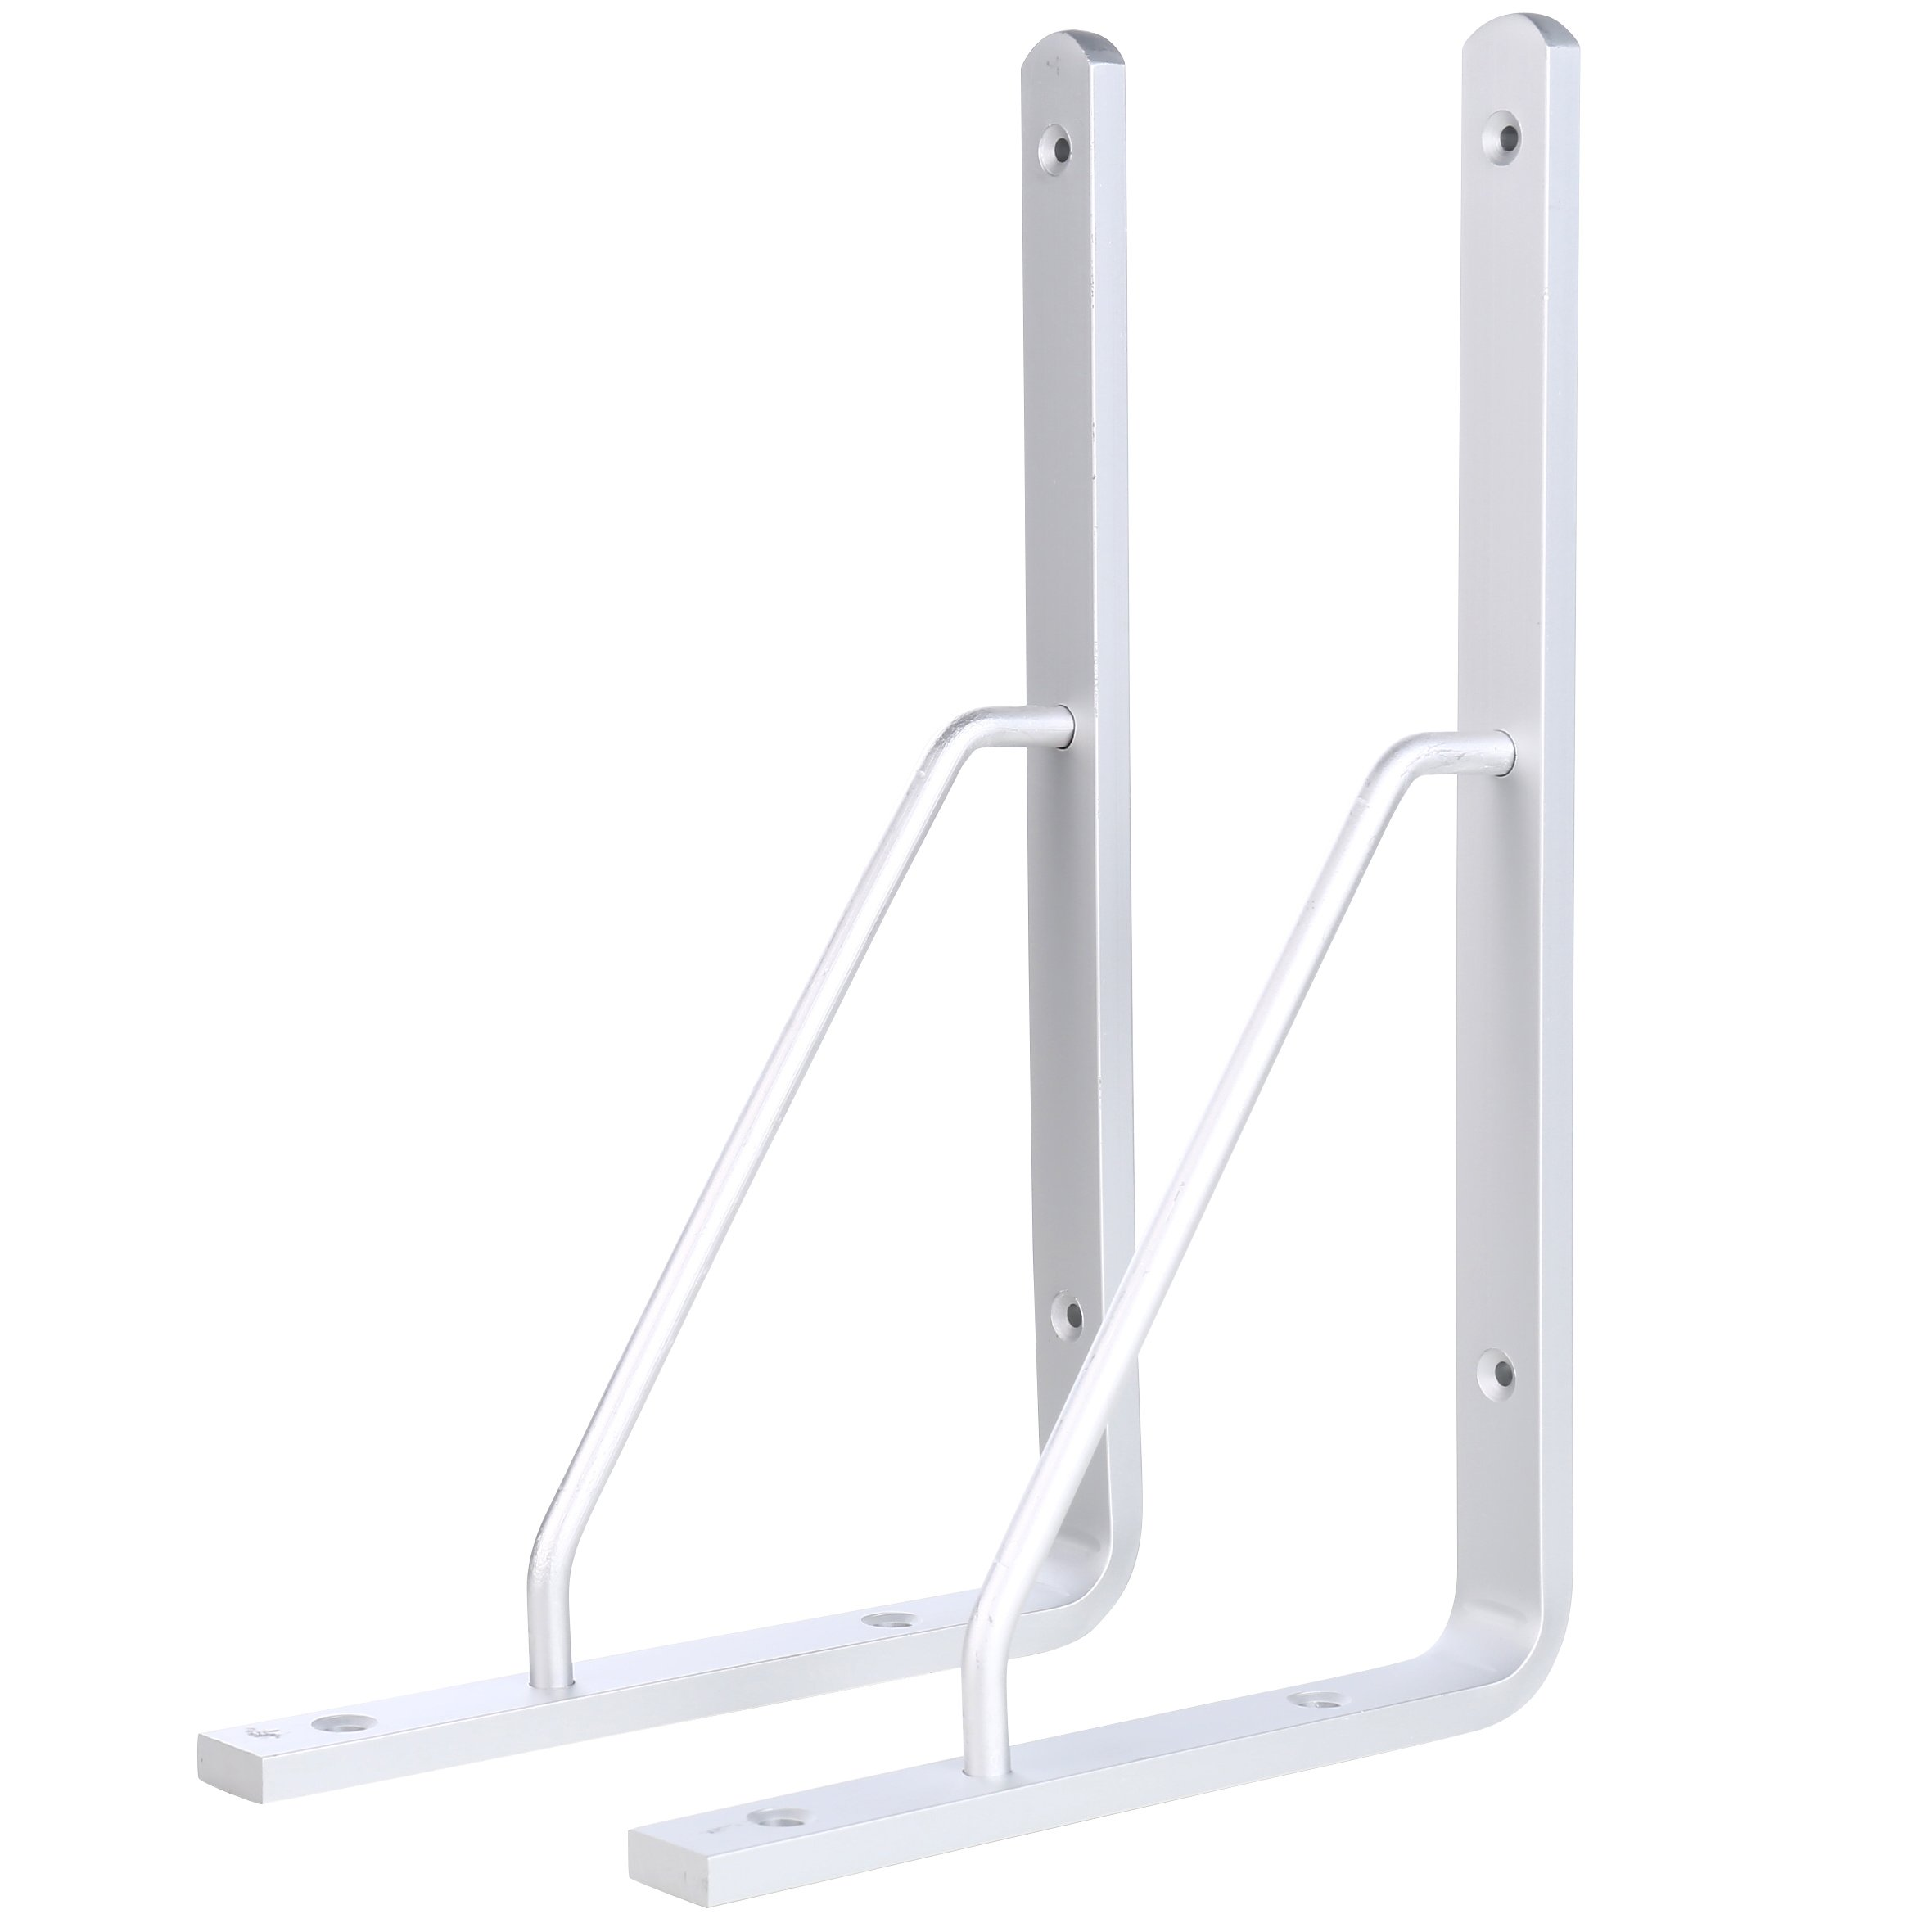 HWMATE Aluminum Alloy 16-inch L Shape Triangle Shelf Bracket Thickened Corner Brace Support Wall Mount (2 Pack)